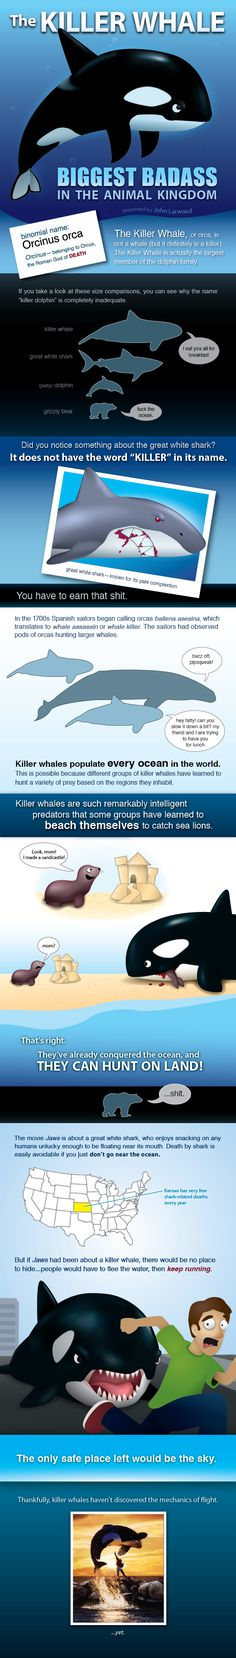 In honor of shark week please enjoy this infographic about the #killerwhale #infographic